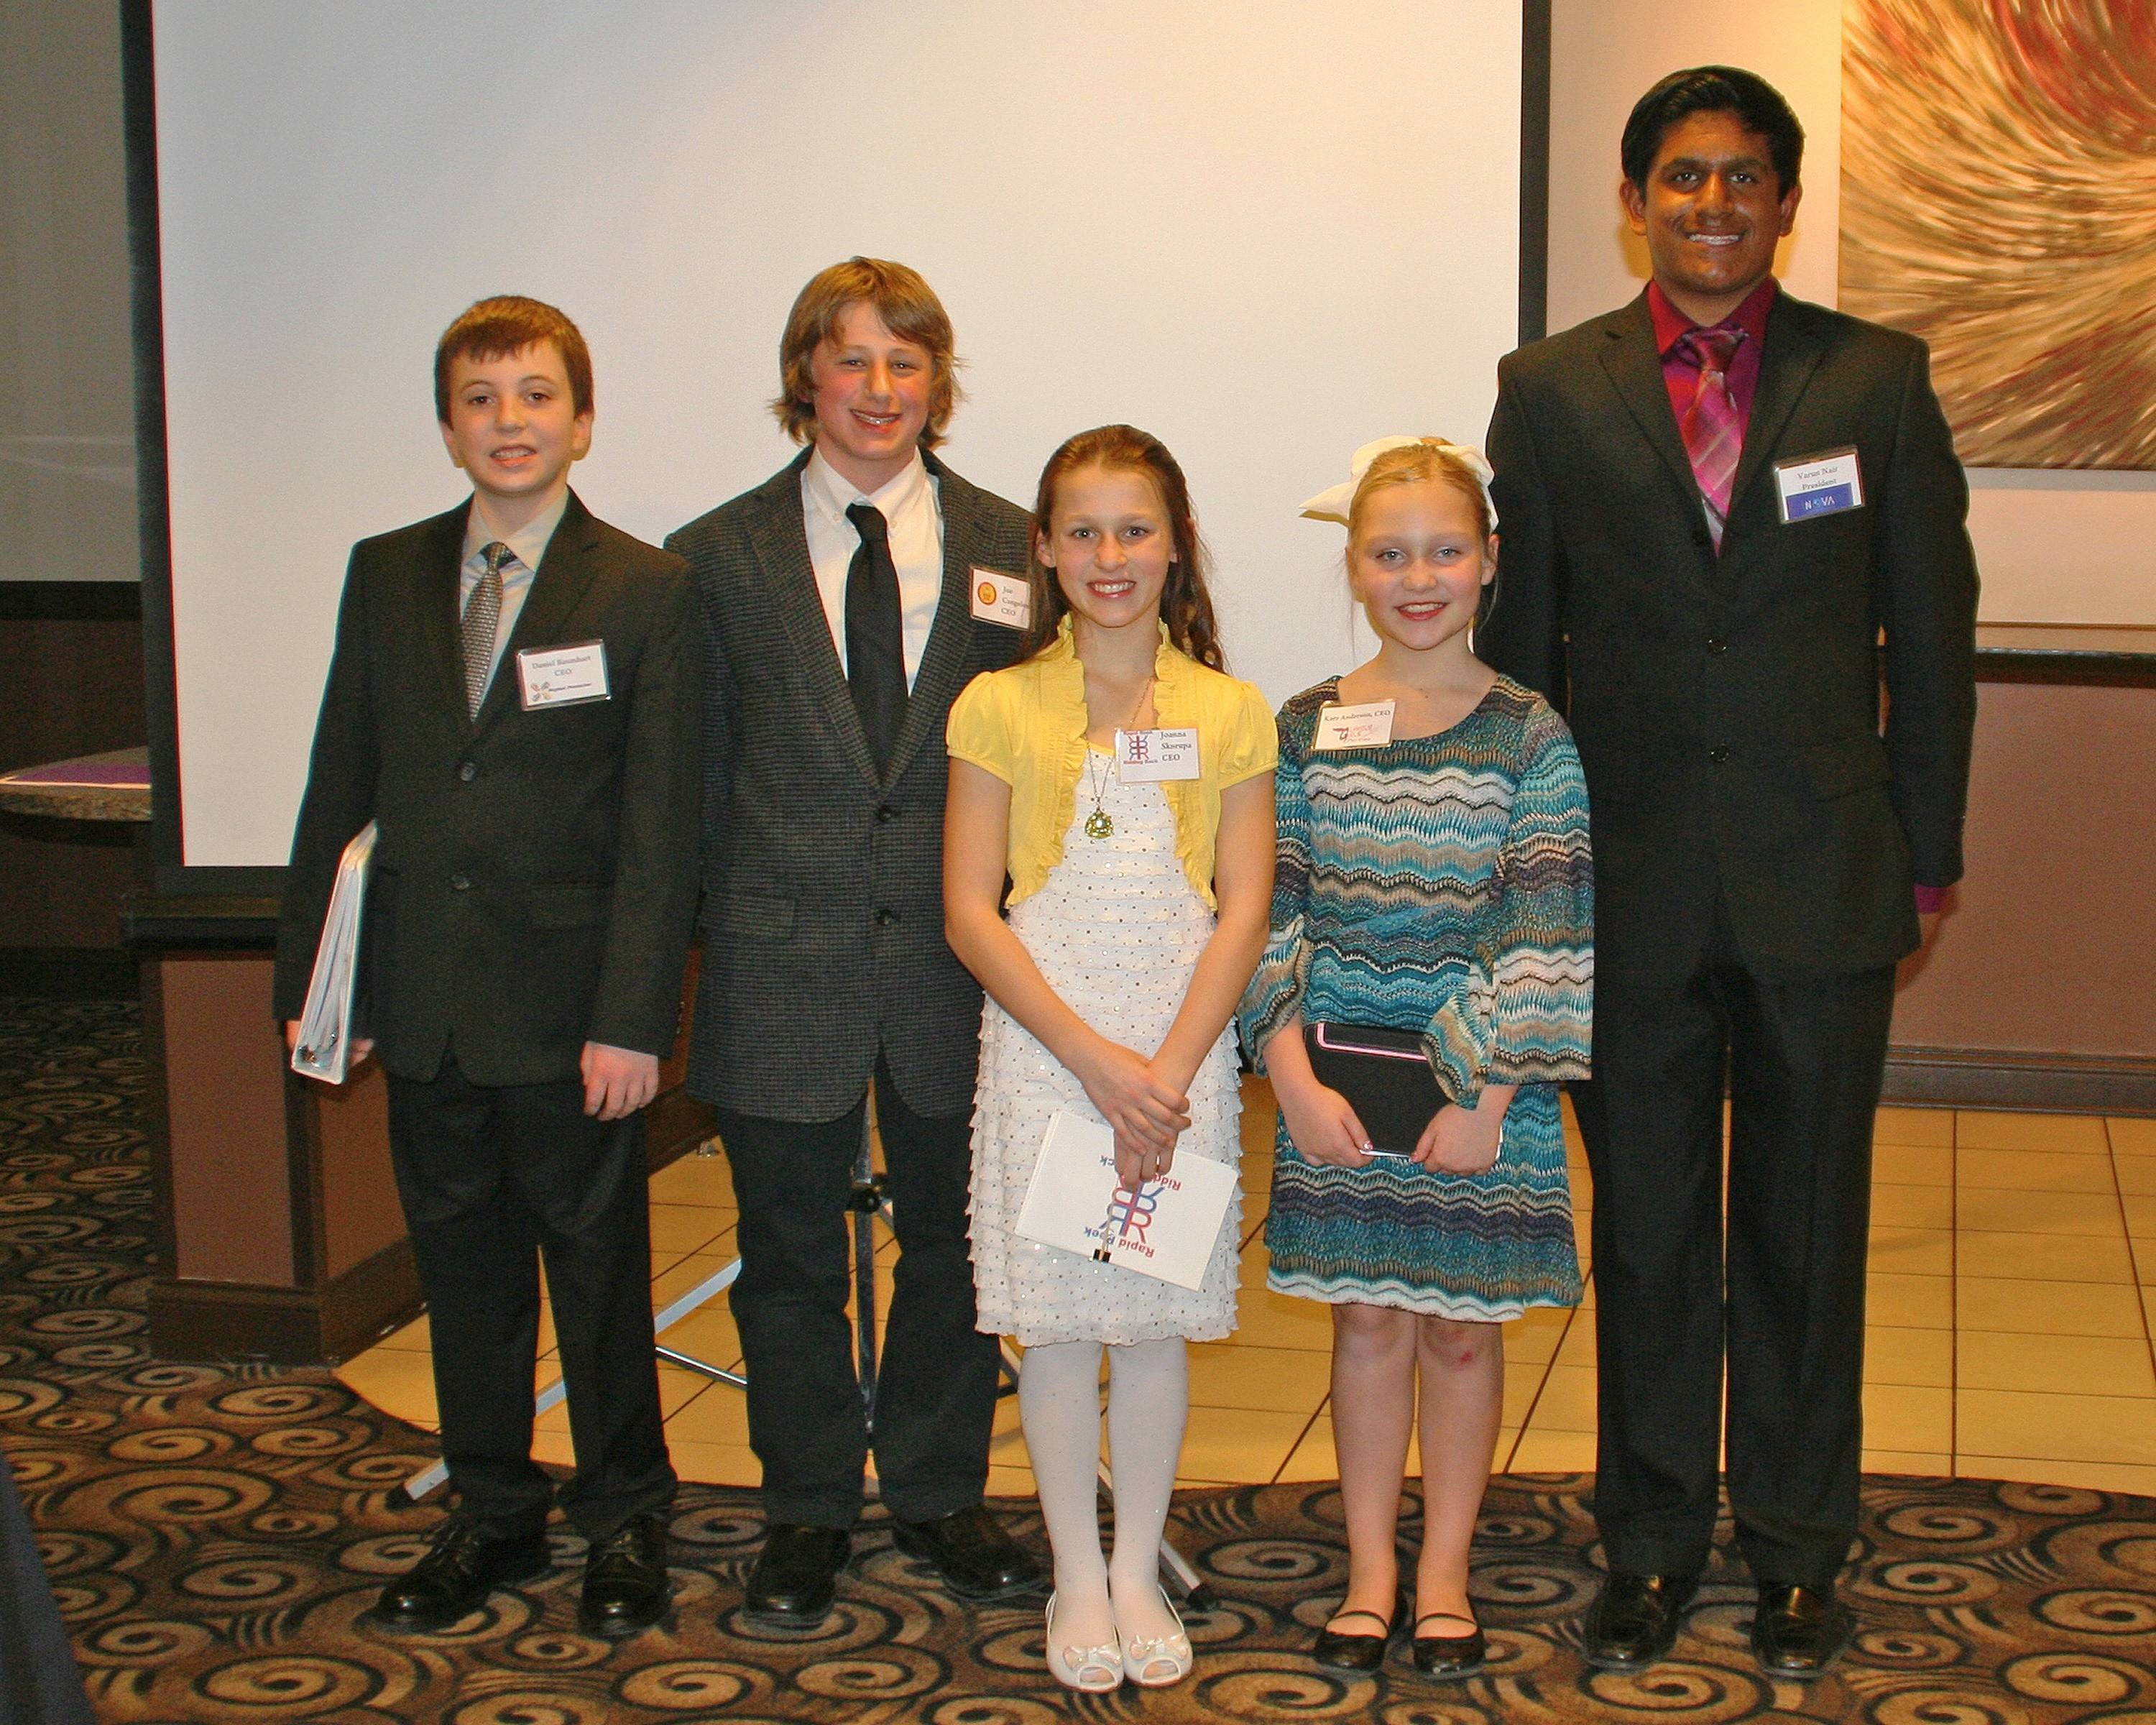 The Des Plaines Young Entrepreneur Academy presenters were Dan Baumhart, Stylish Protectors; Joe Cangelosi, Klay King; Joanna Skorupa, Rapid Reek Ridding Rack; Katie Anderson, Glamour Girls Parties; and Varun Nair, Nova Custom website Design.